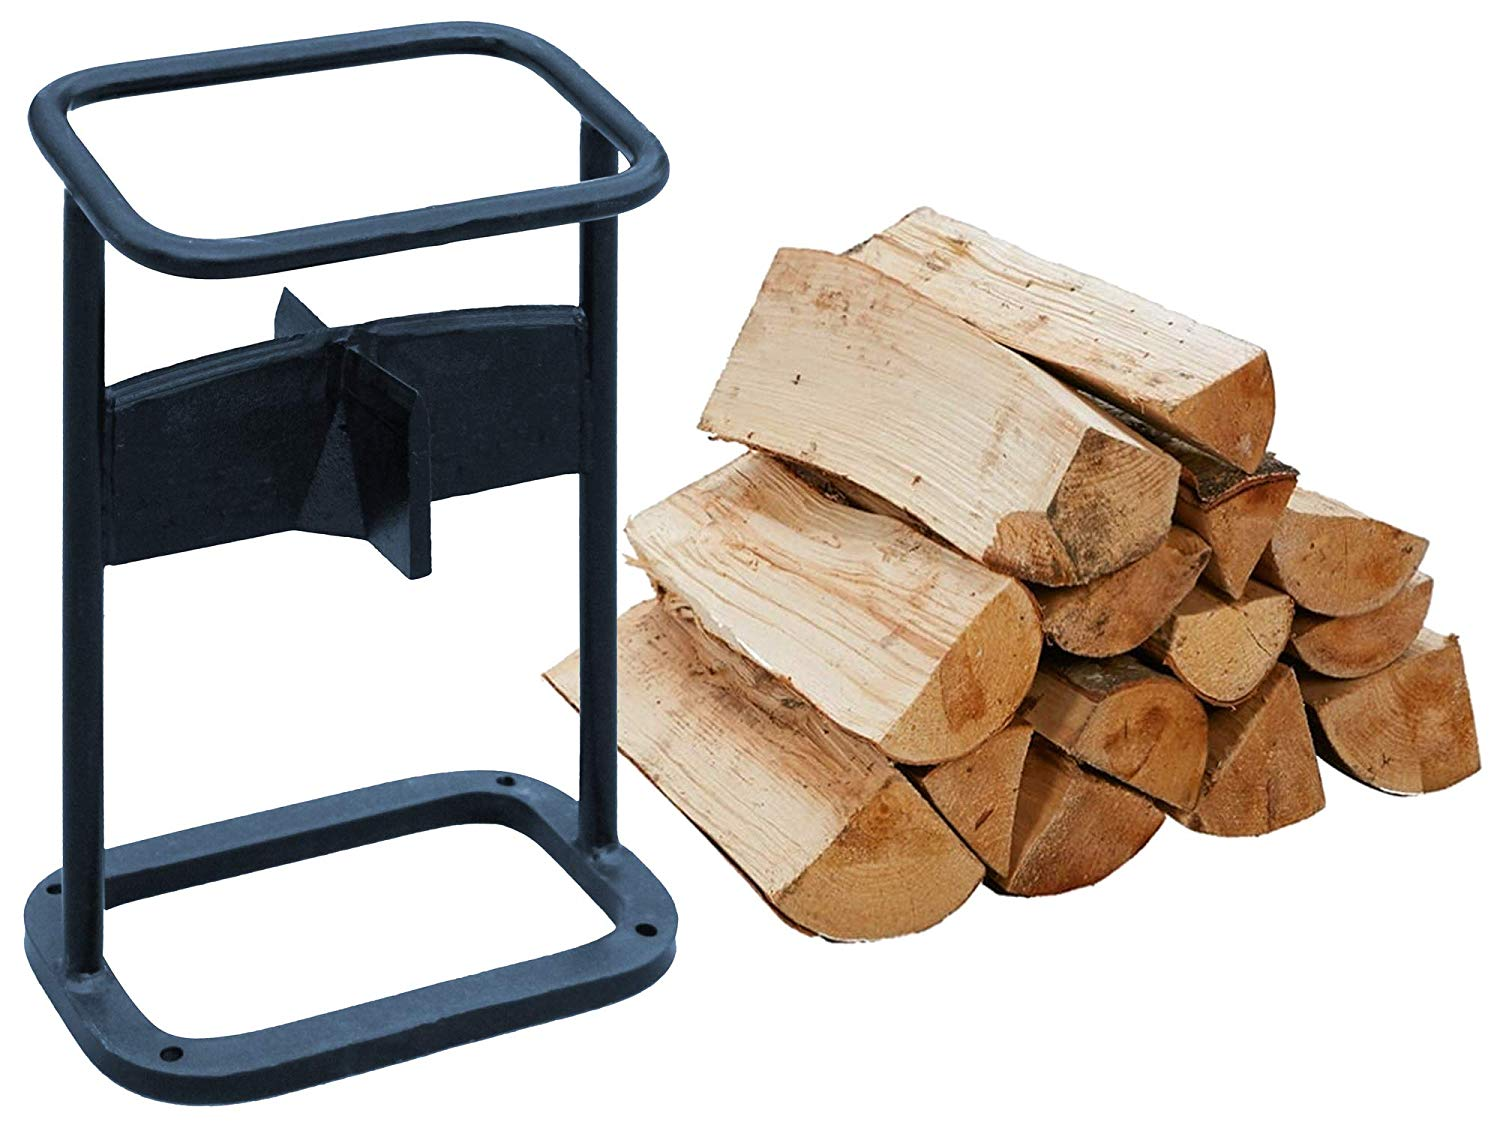 Centurion Supports eZee Splitter - Premium Firewood Kindling Splitter with 4-Way Blade